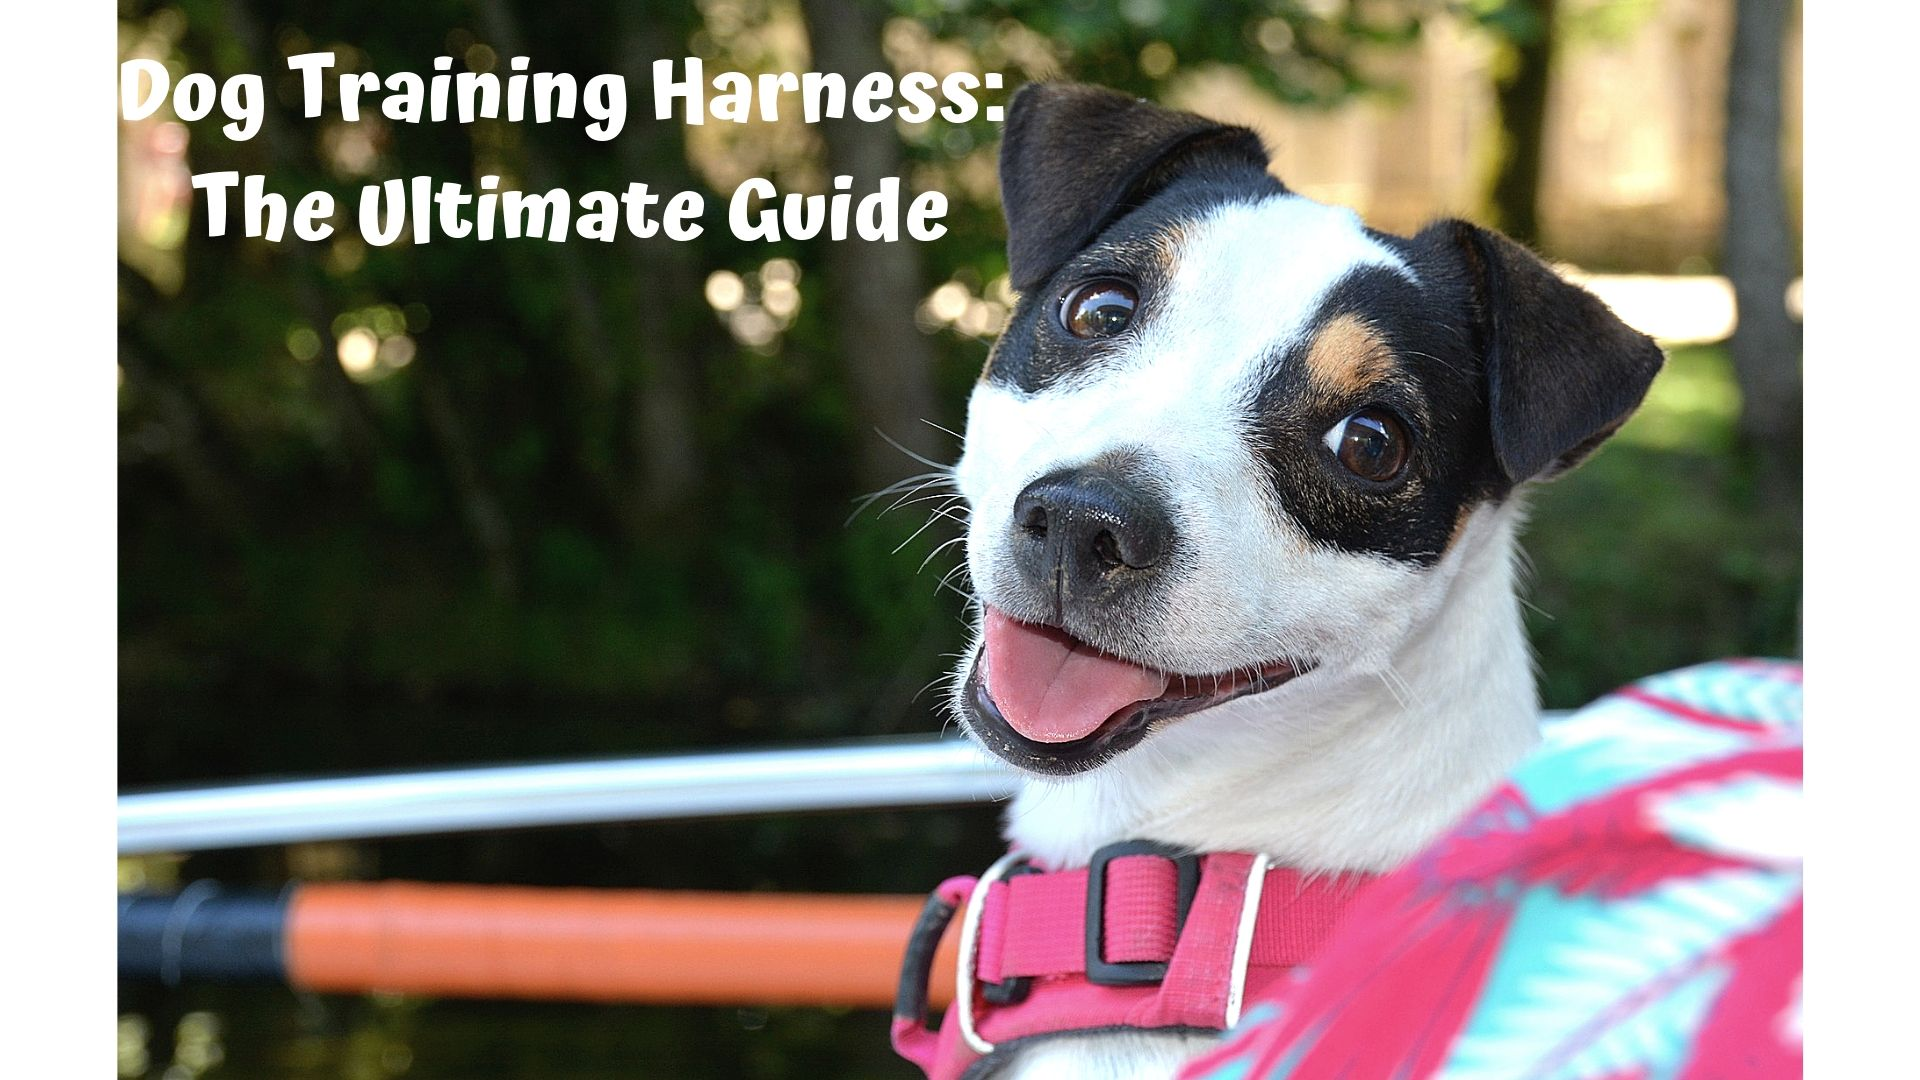 Dog Training Harness: Ultimate Guide